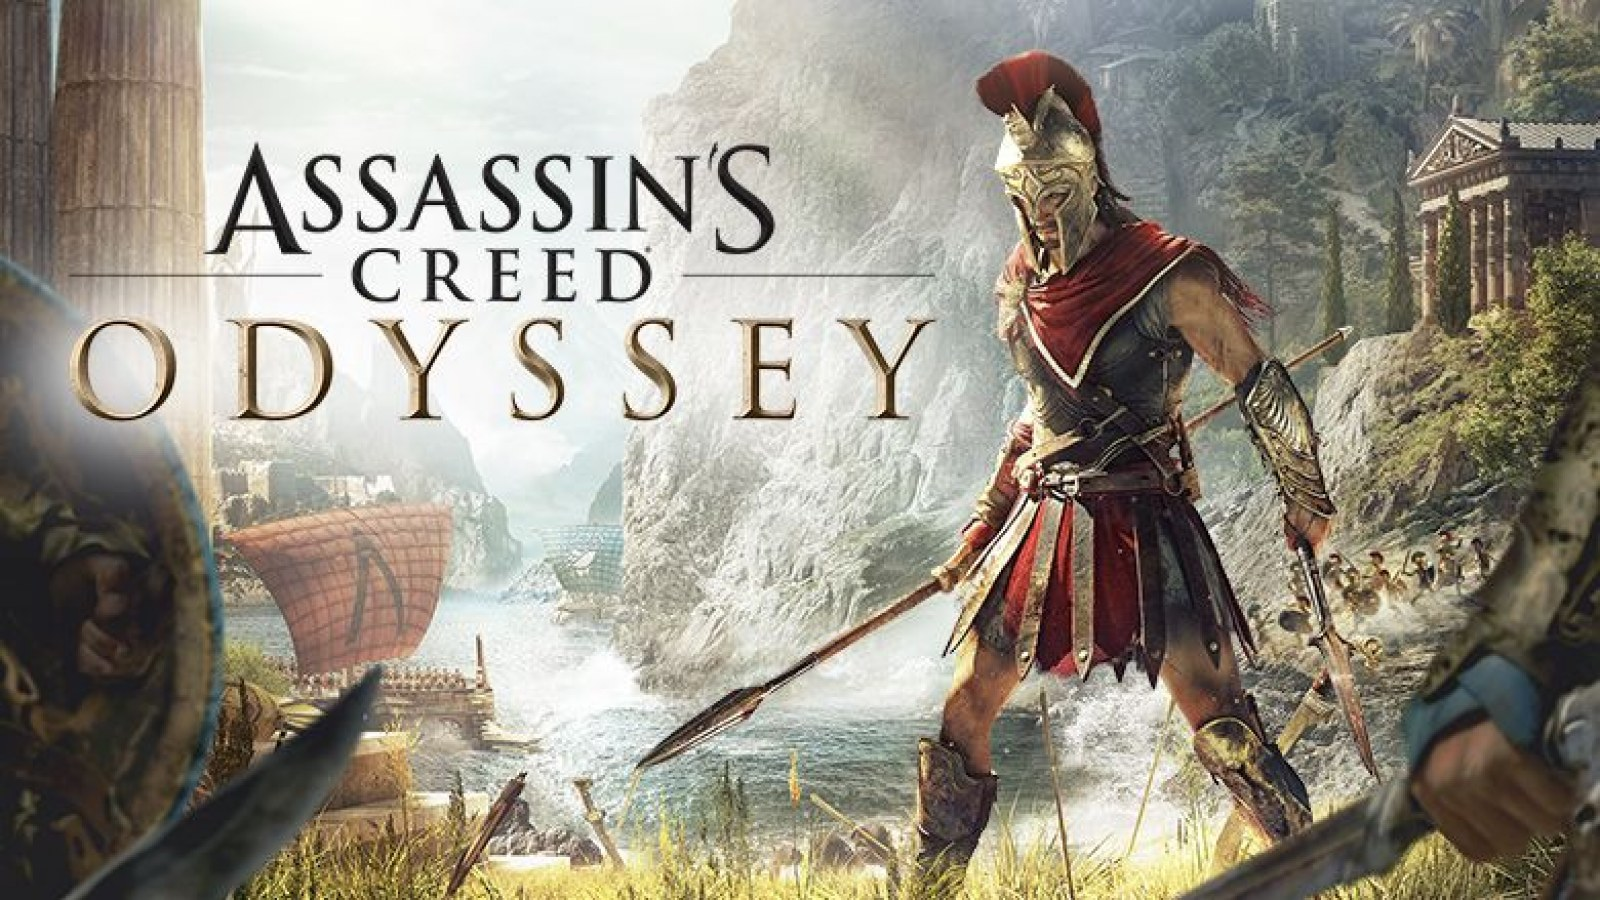 assassins-creed-odyssey-review.jpg